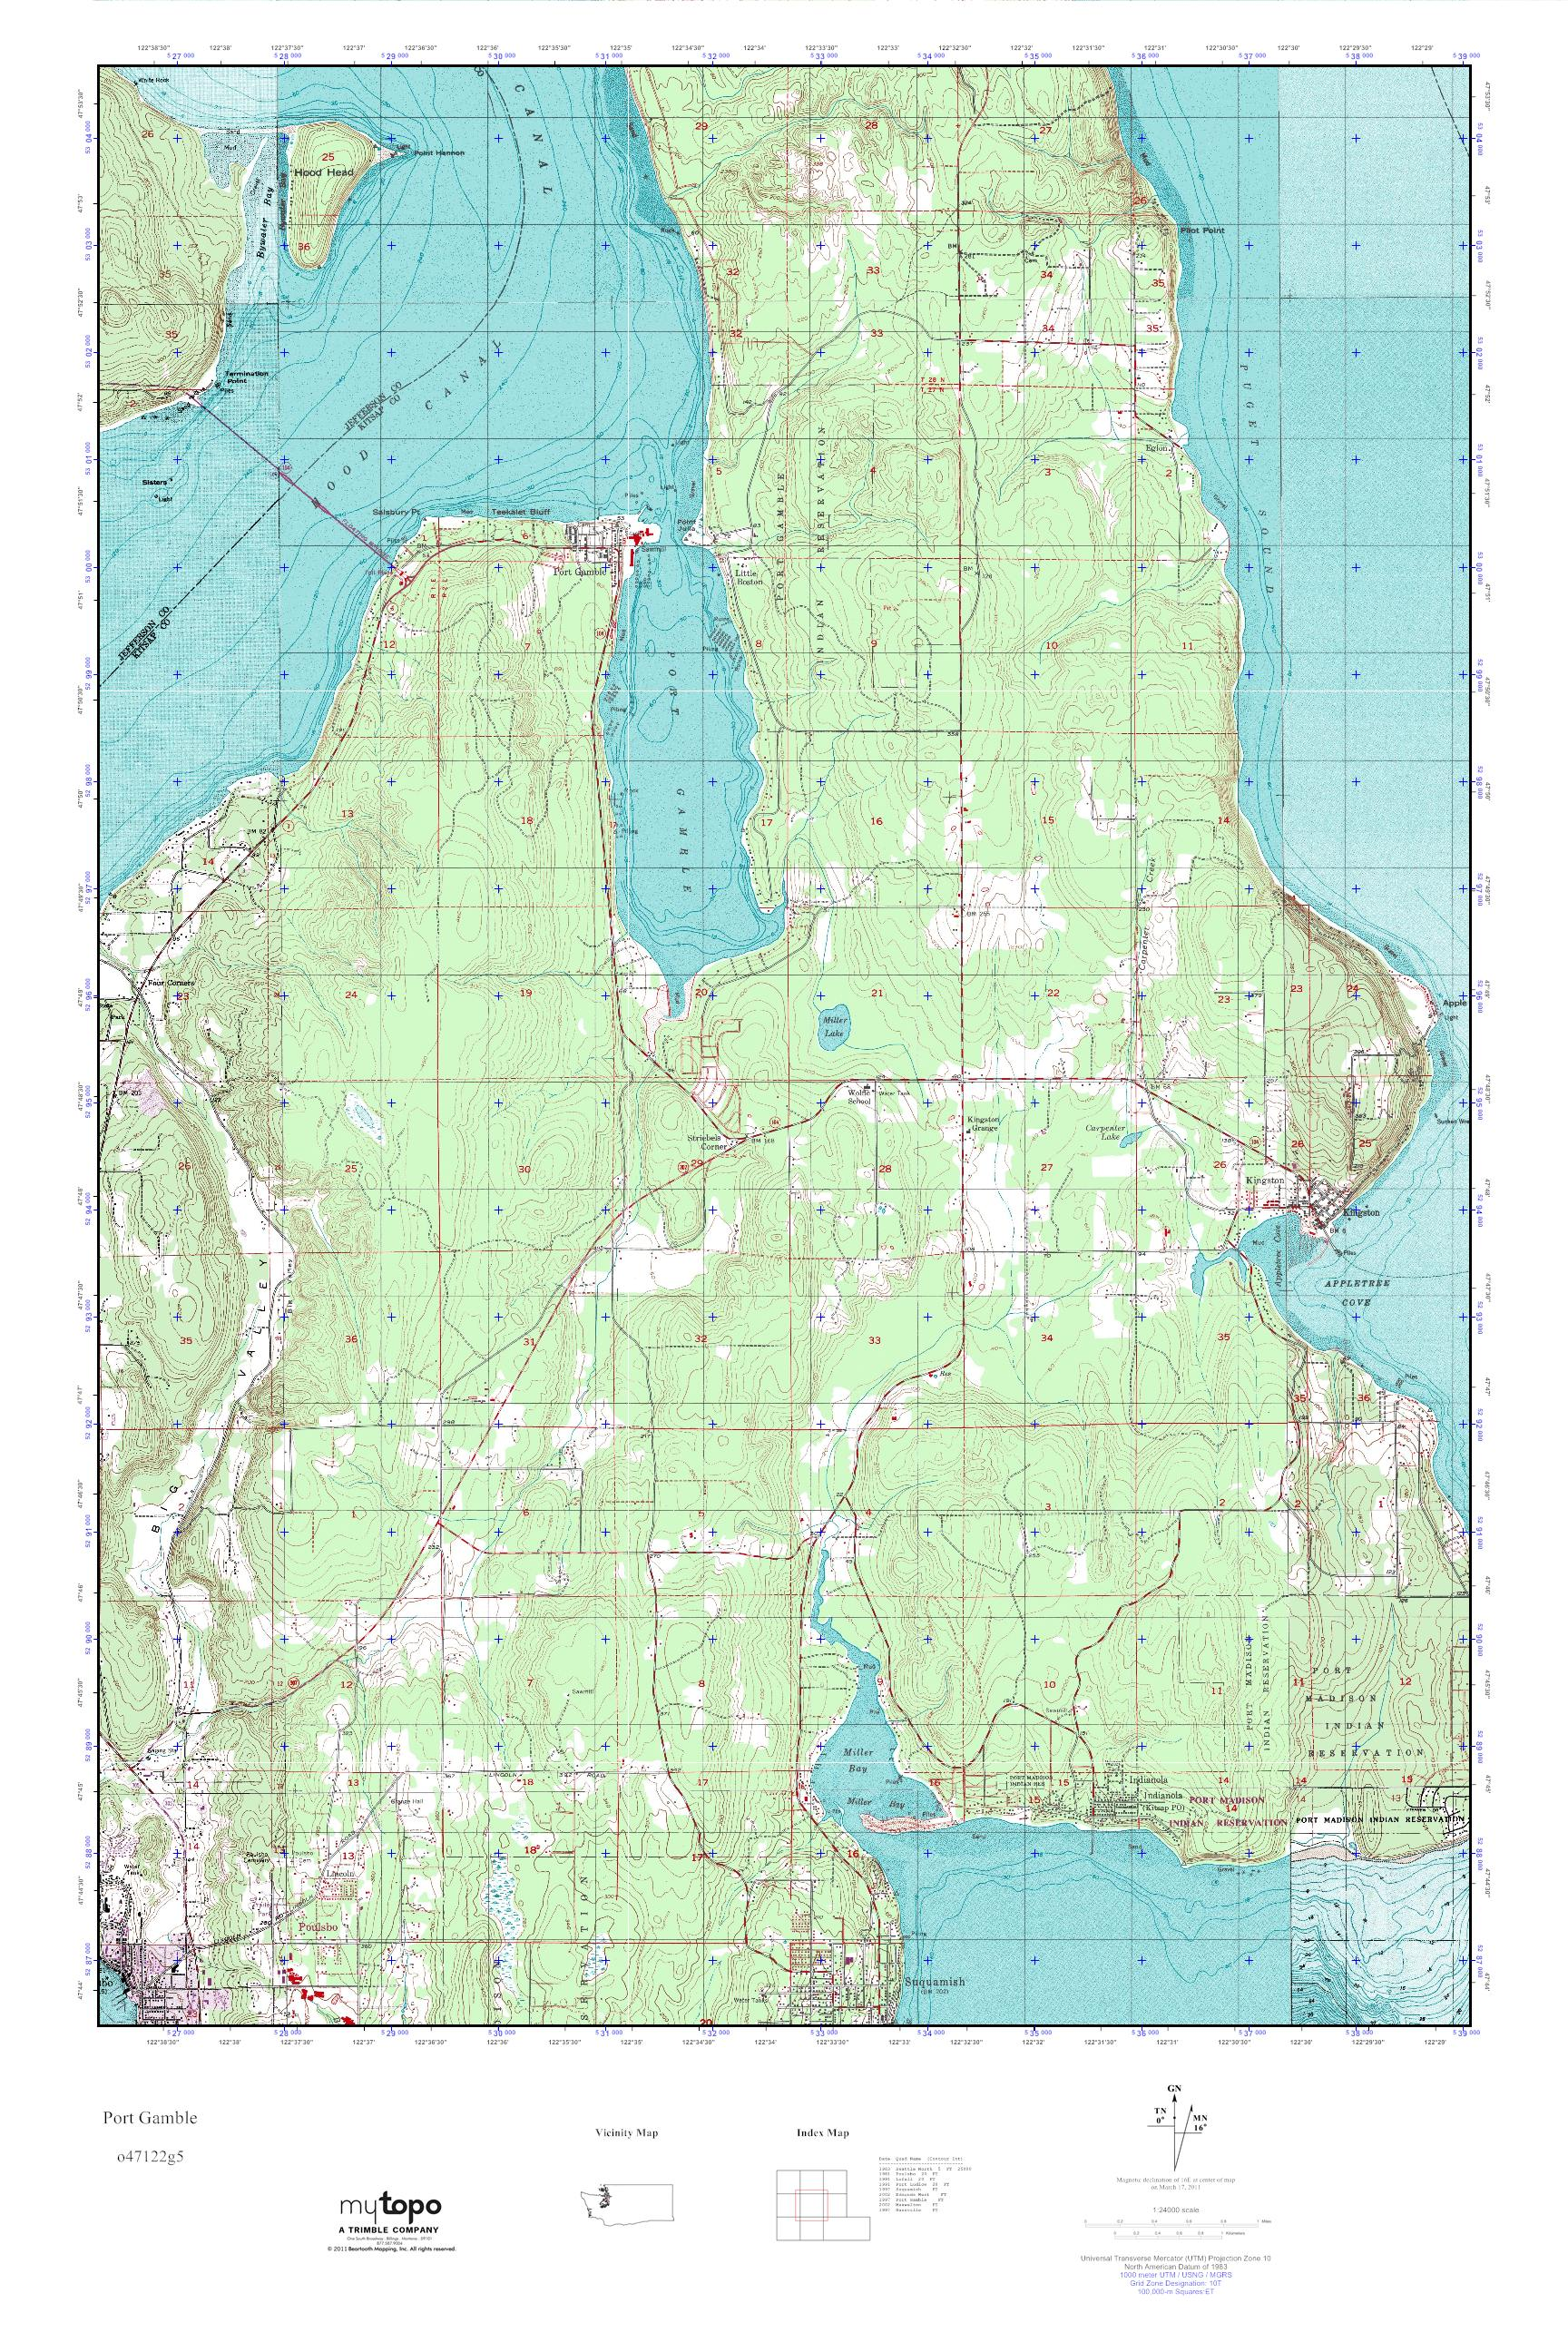 Port Gamble Washington Map.Mytopo Port Gamble Washington Usgs Quad Topo Map